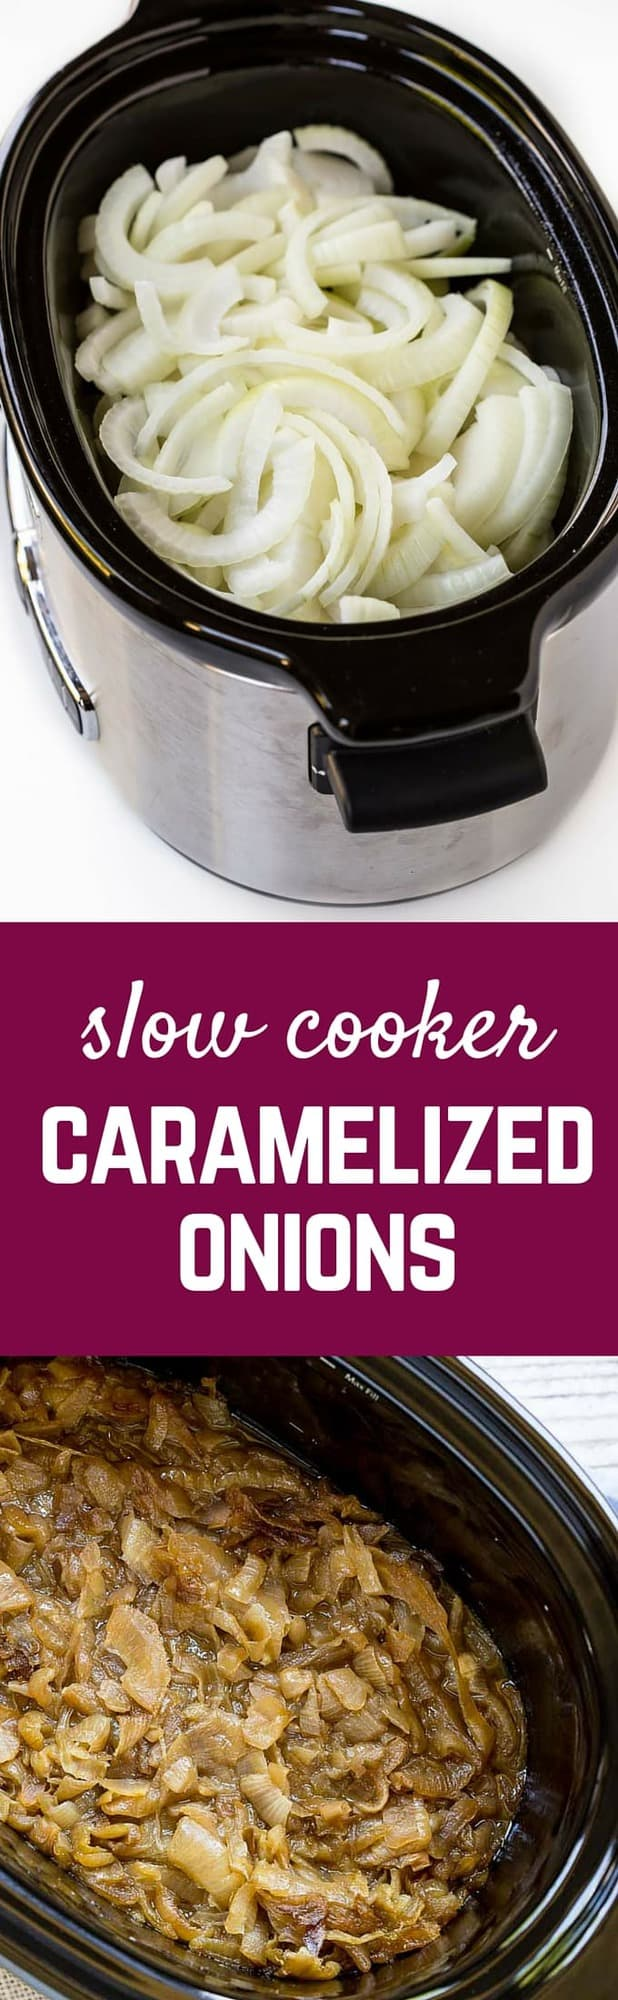 Slow Cooker Caramelized Onions - Rachel Cooks